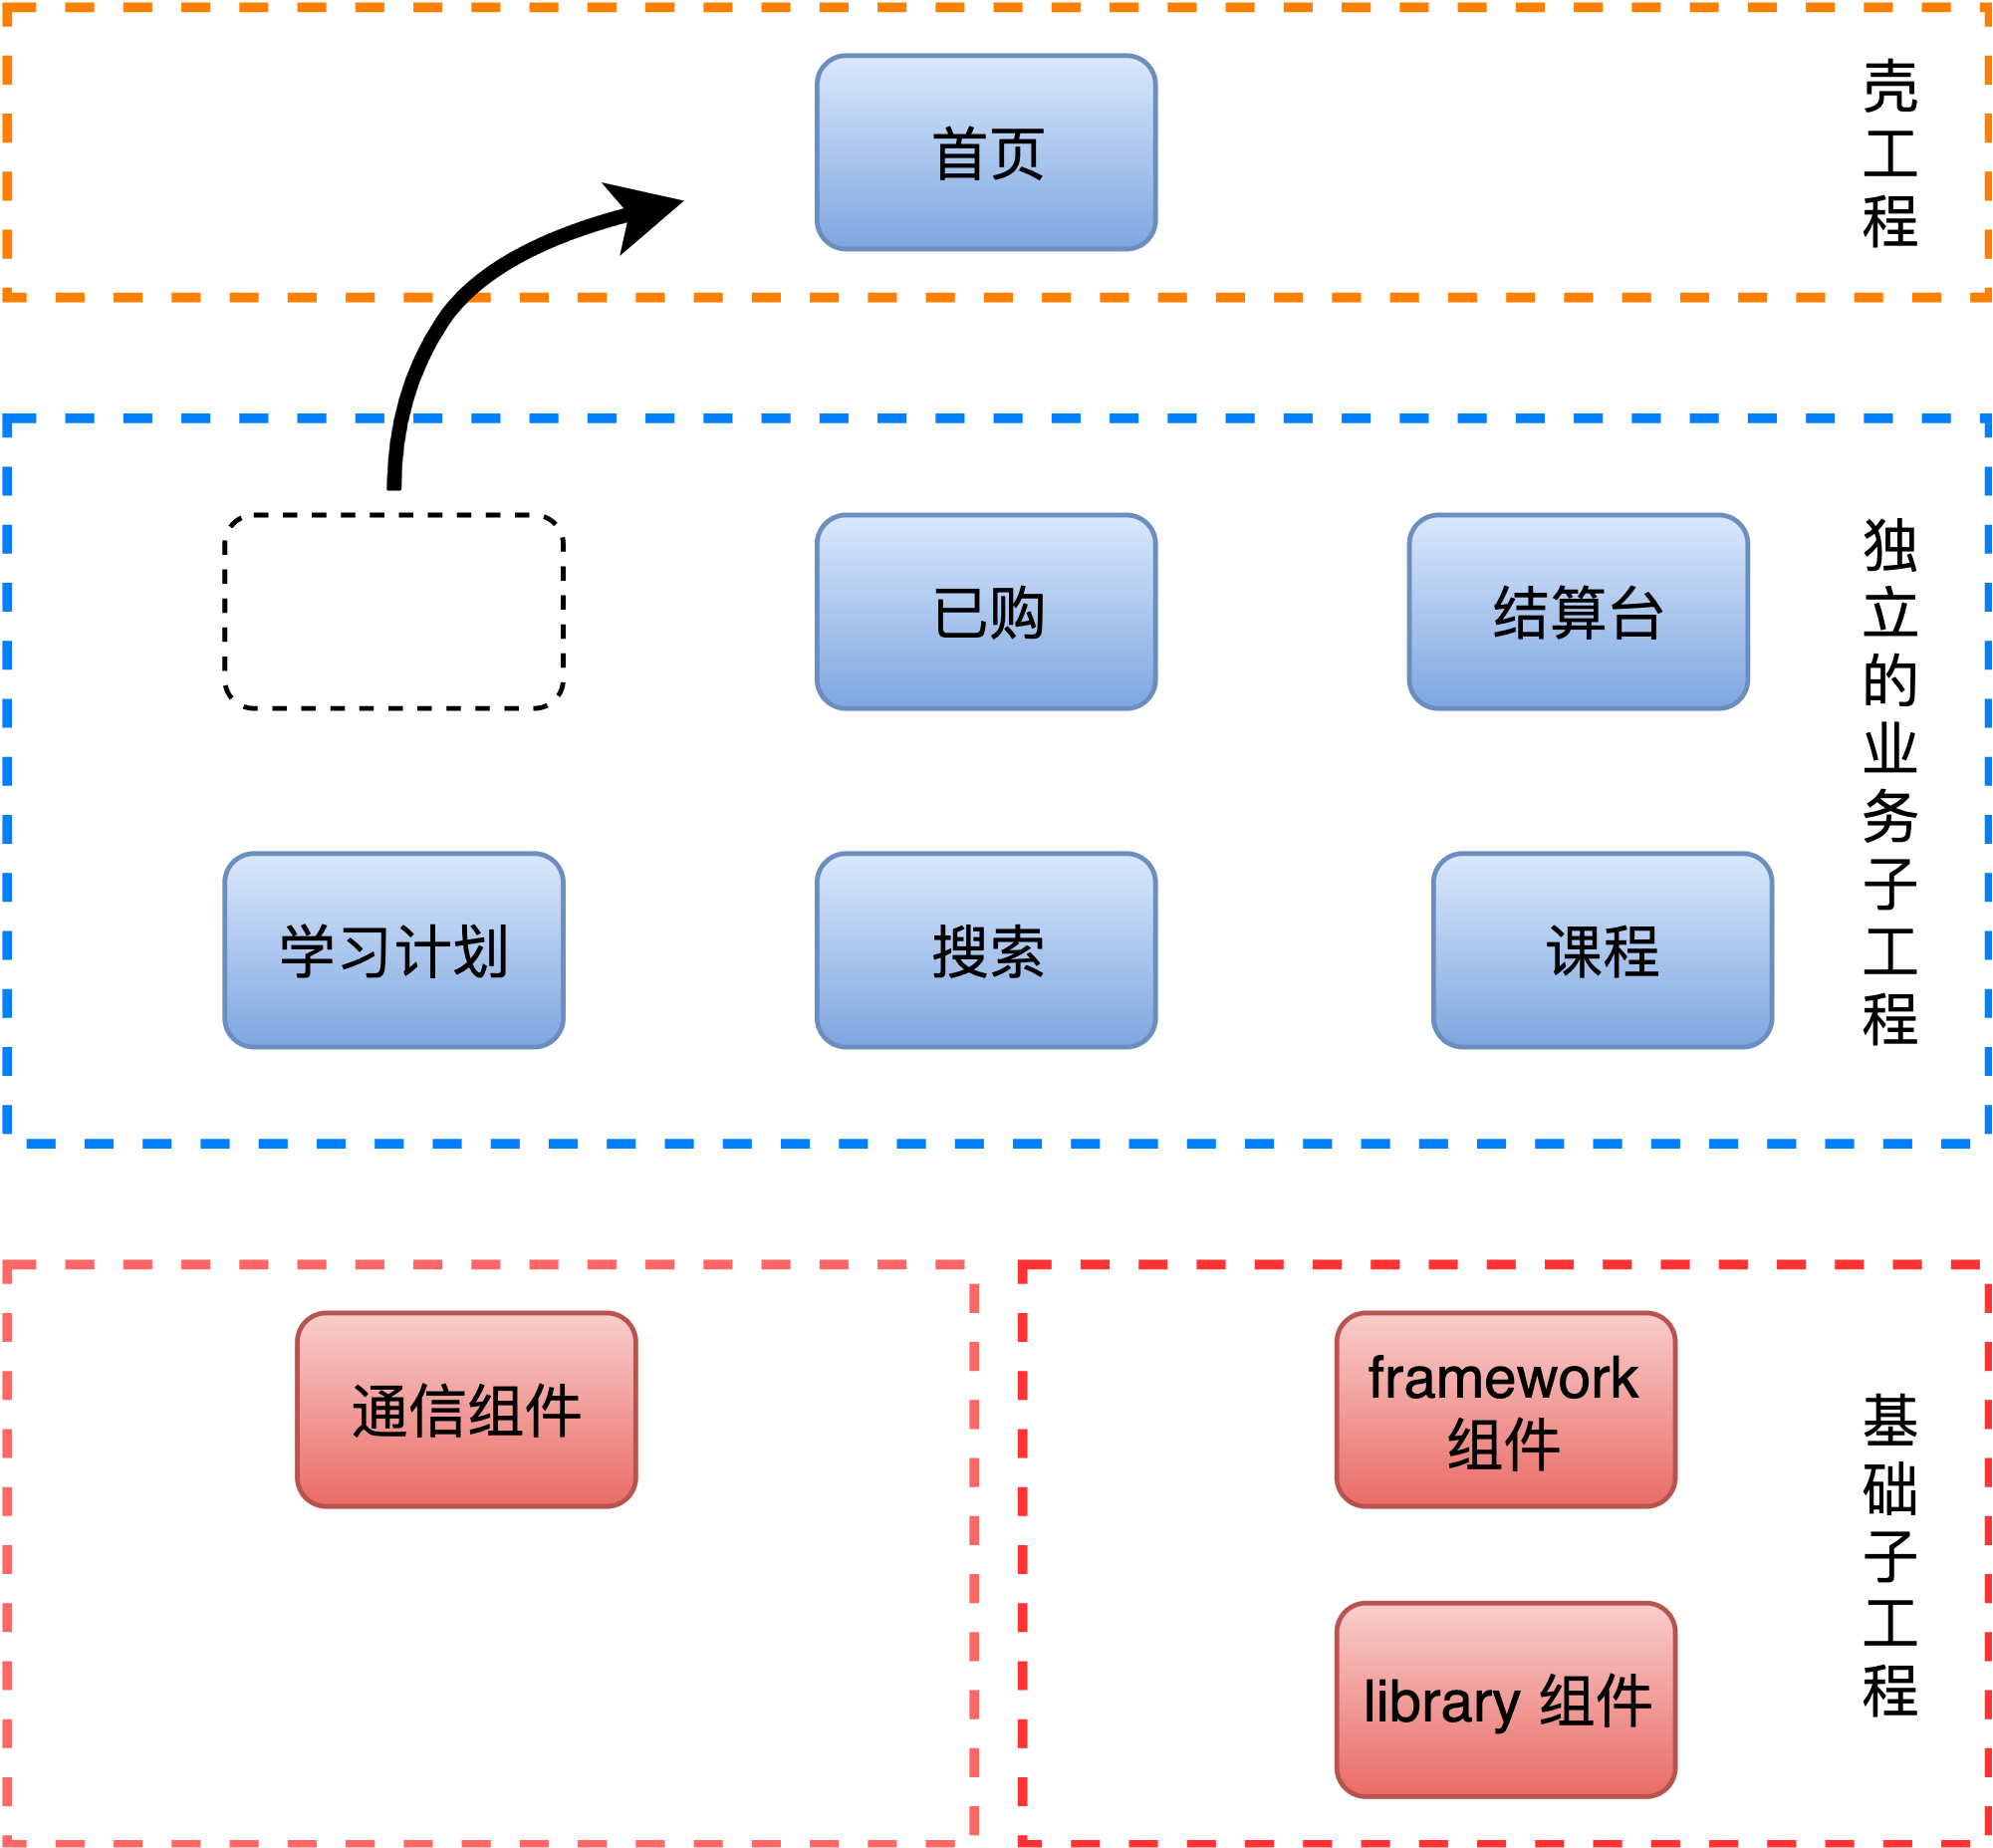 Untitled Diagram (27).png